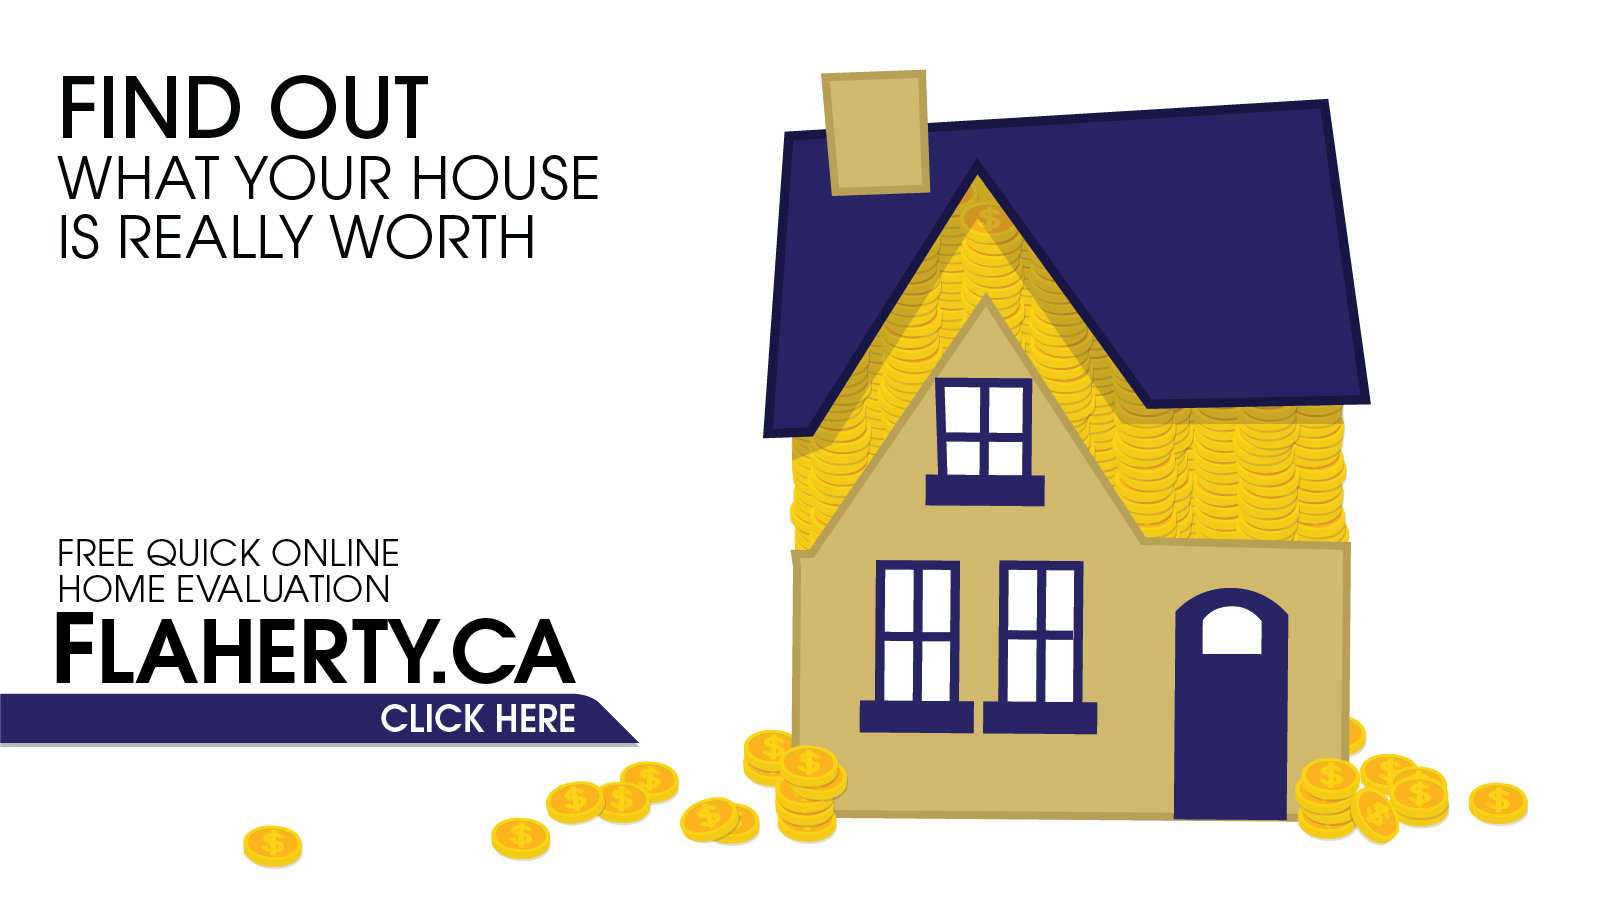 Find out what your house is really worth